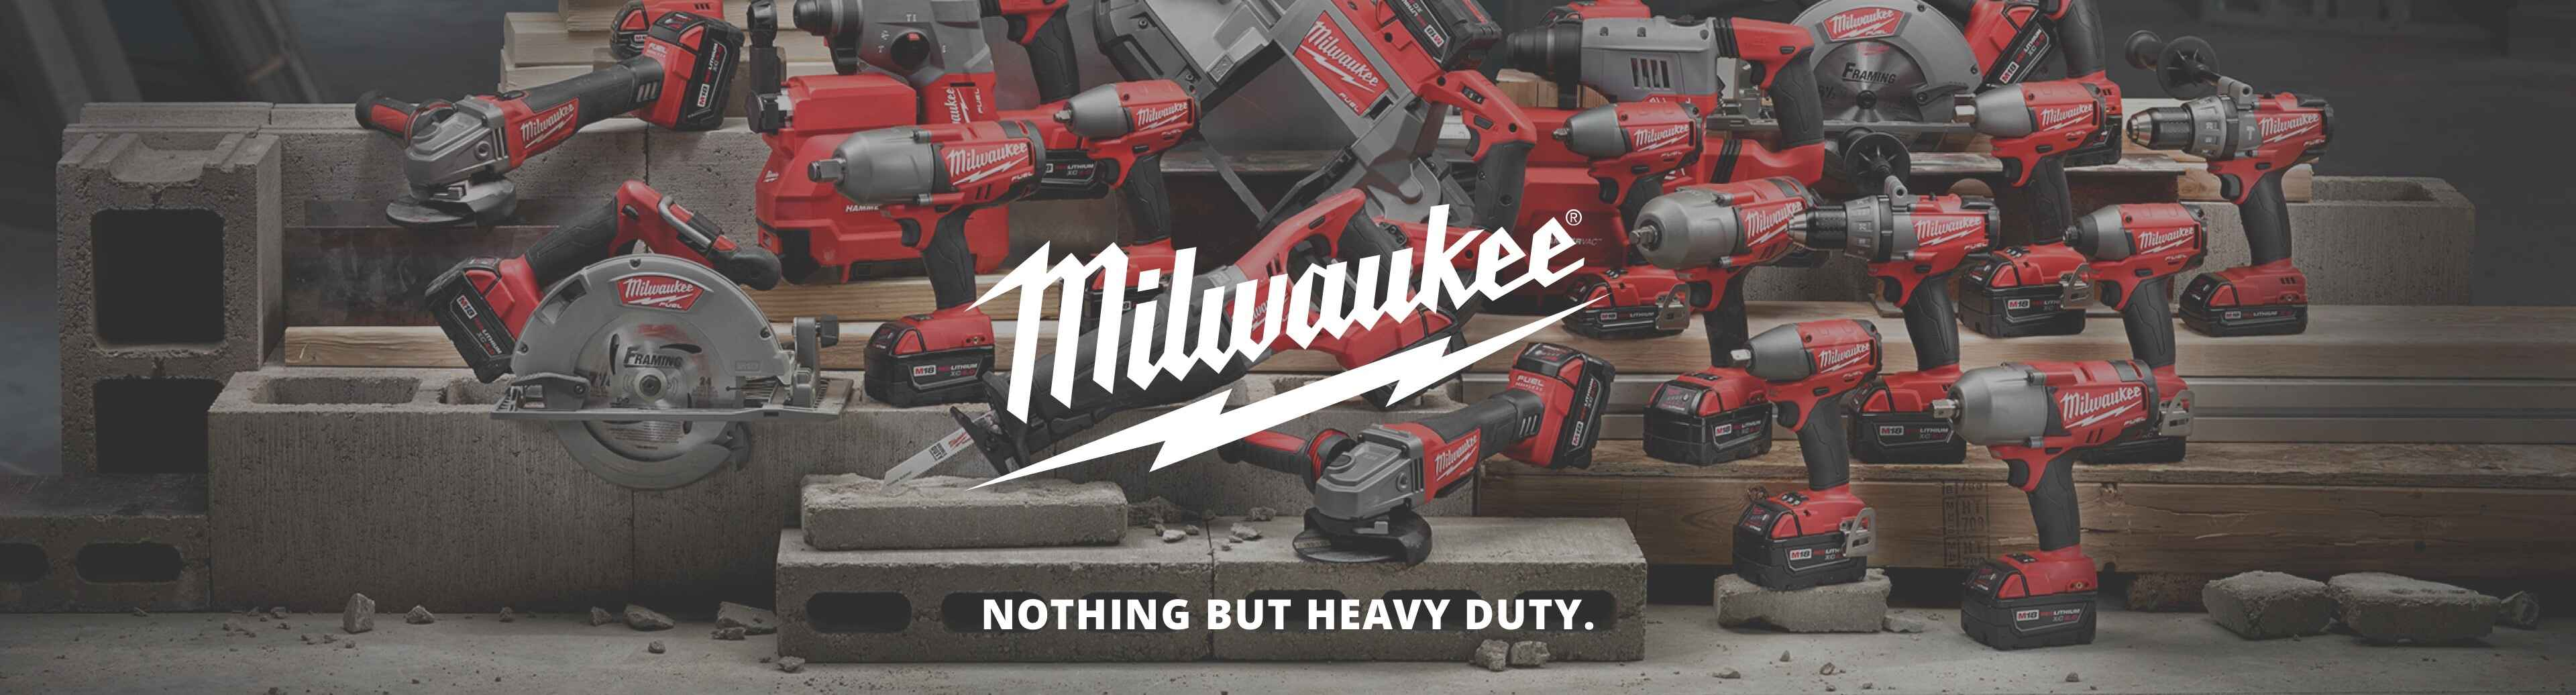 More about Milwaukee power tools at Juergens